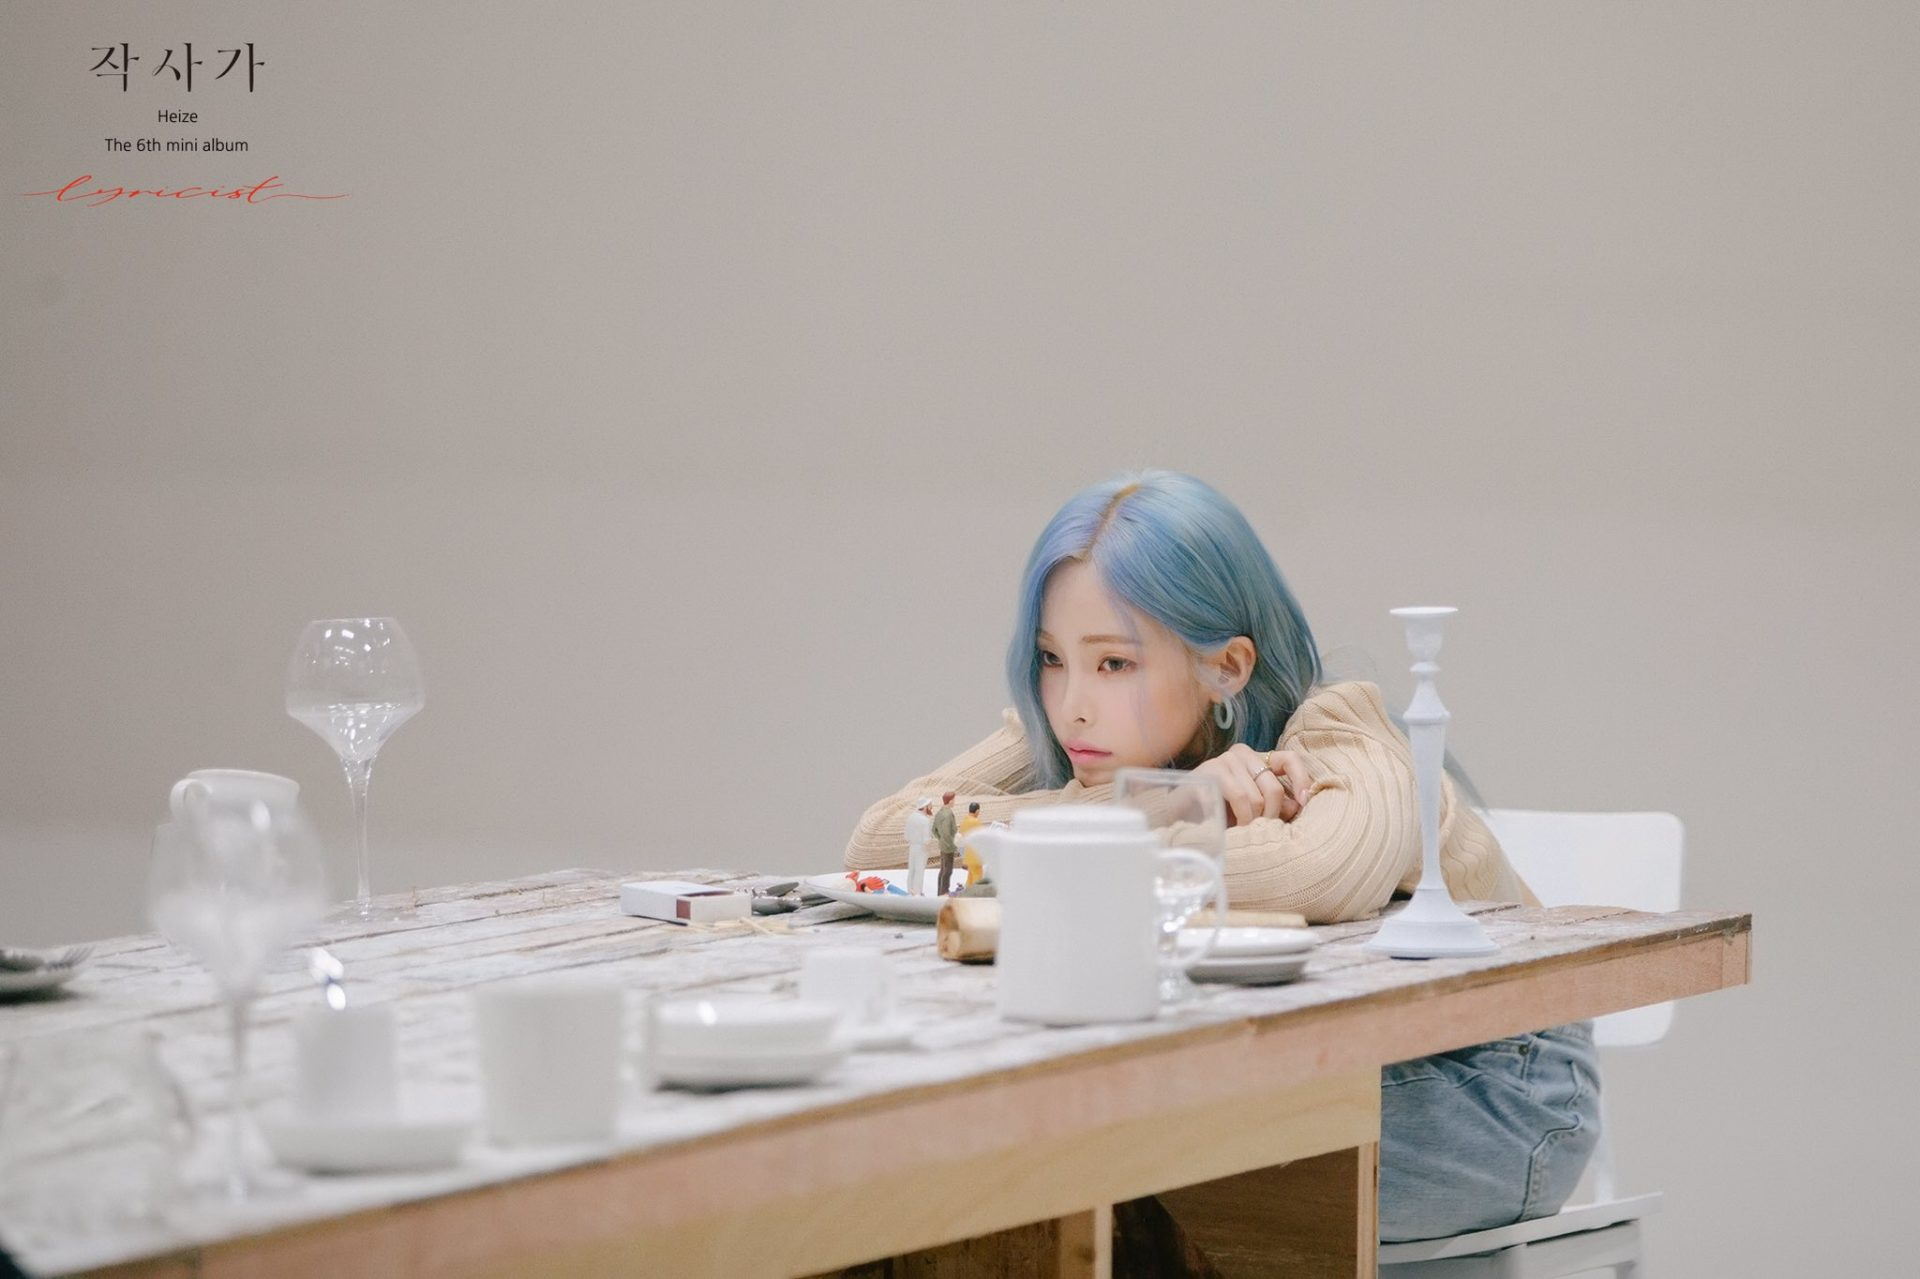 Heize Bawa Fans Intip Set Syuting Dua MV Comeback 'Lyricist' dan 'Things are going well'